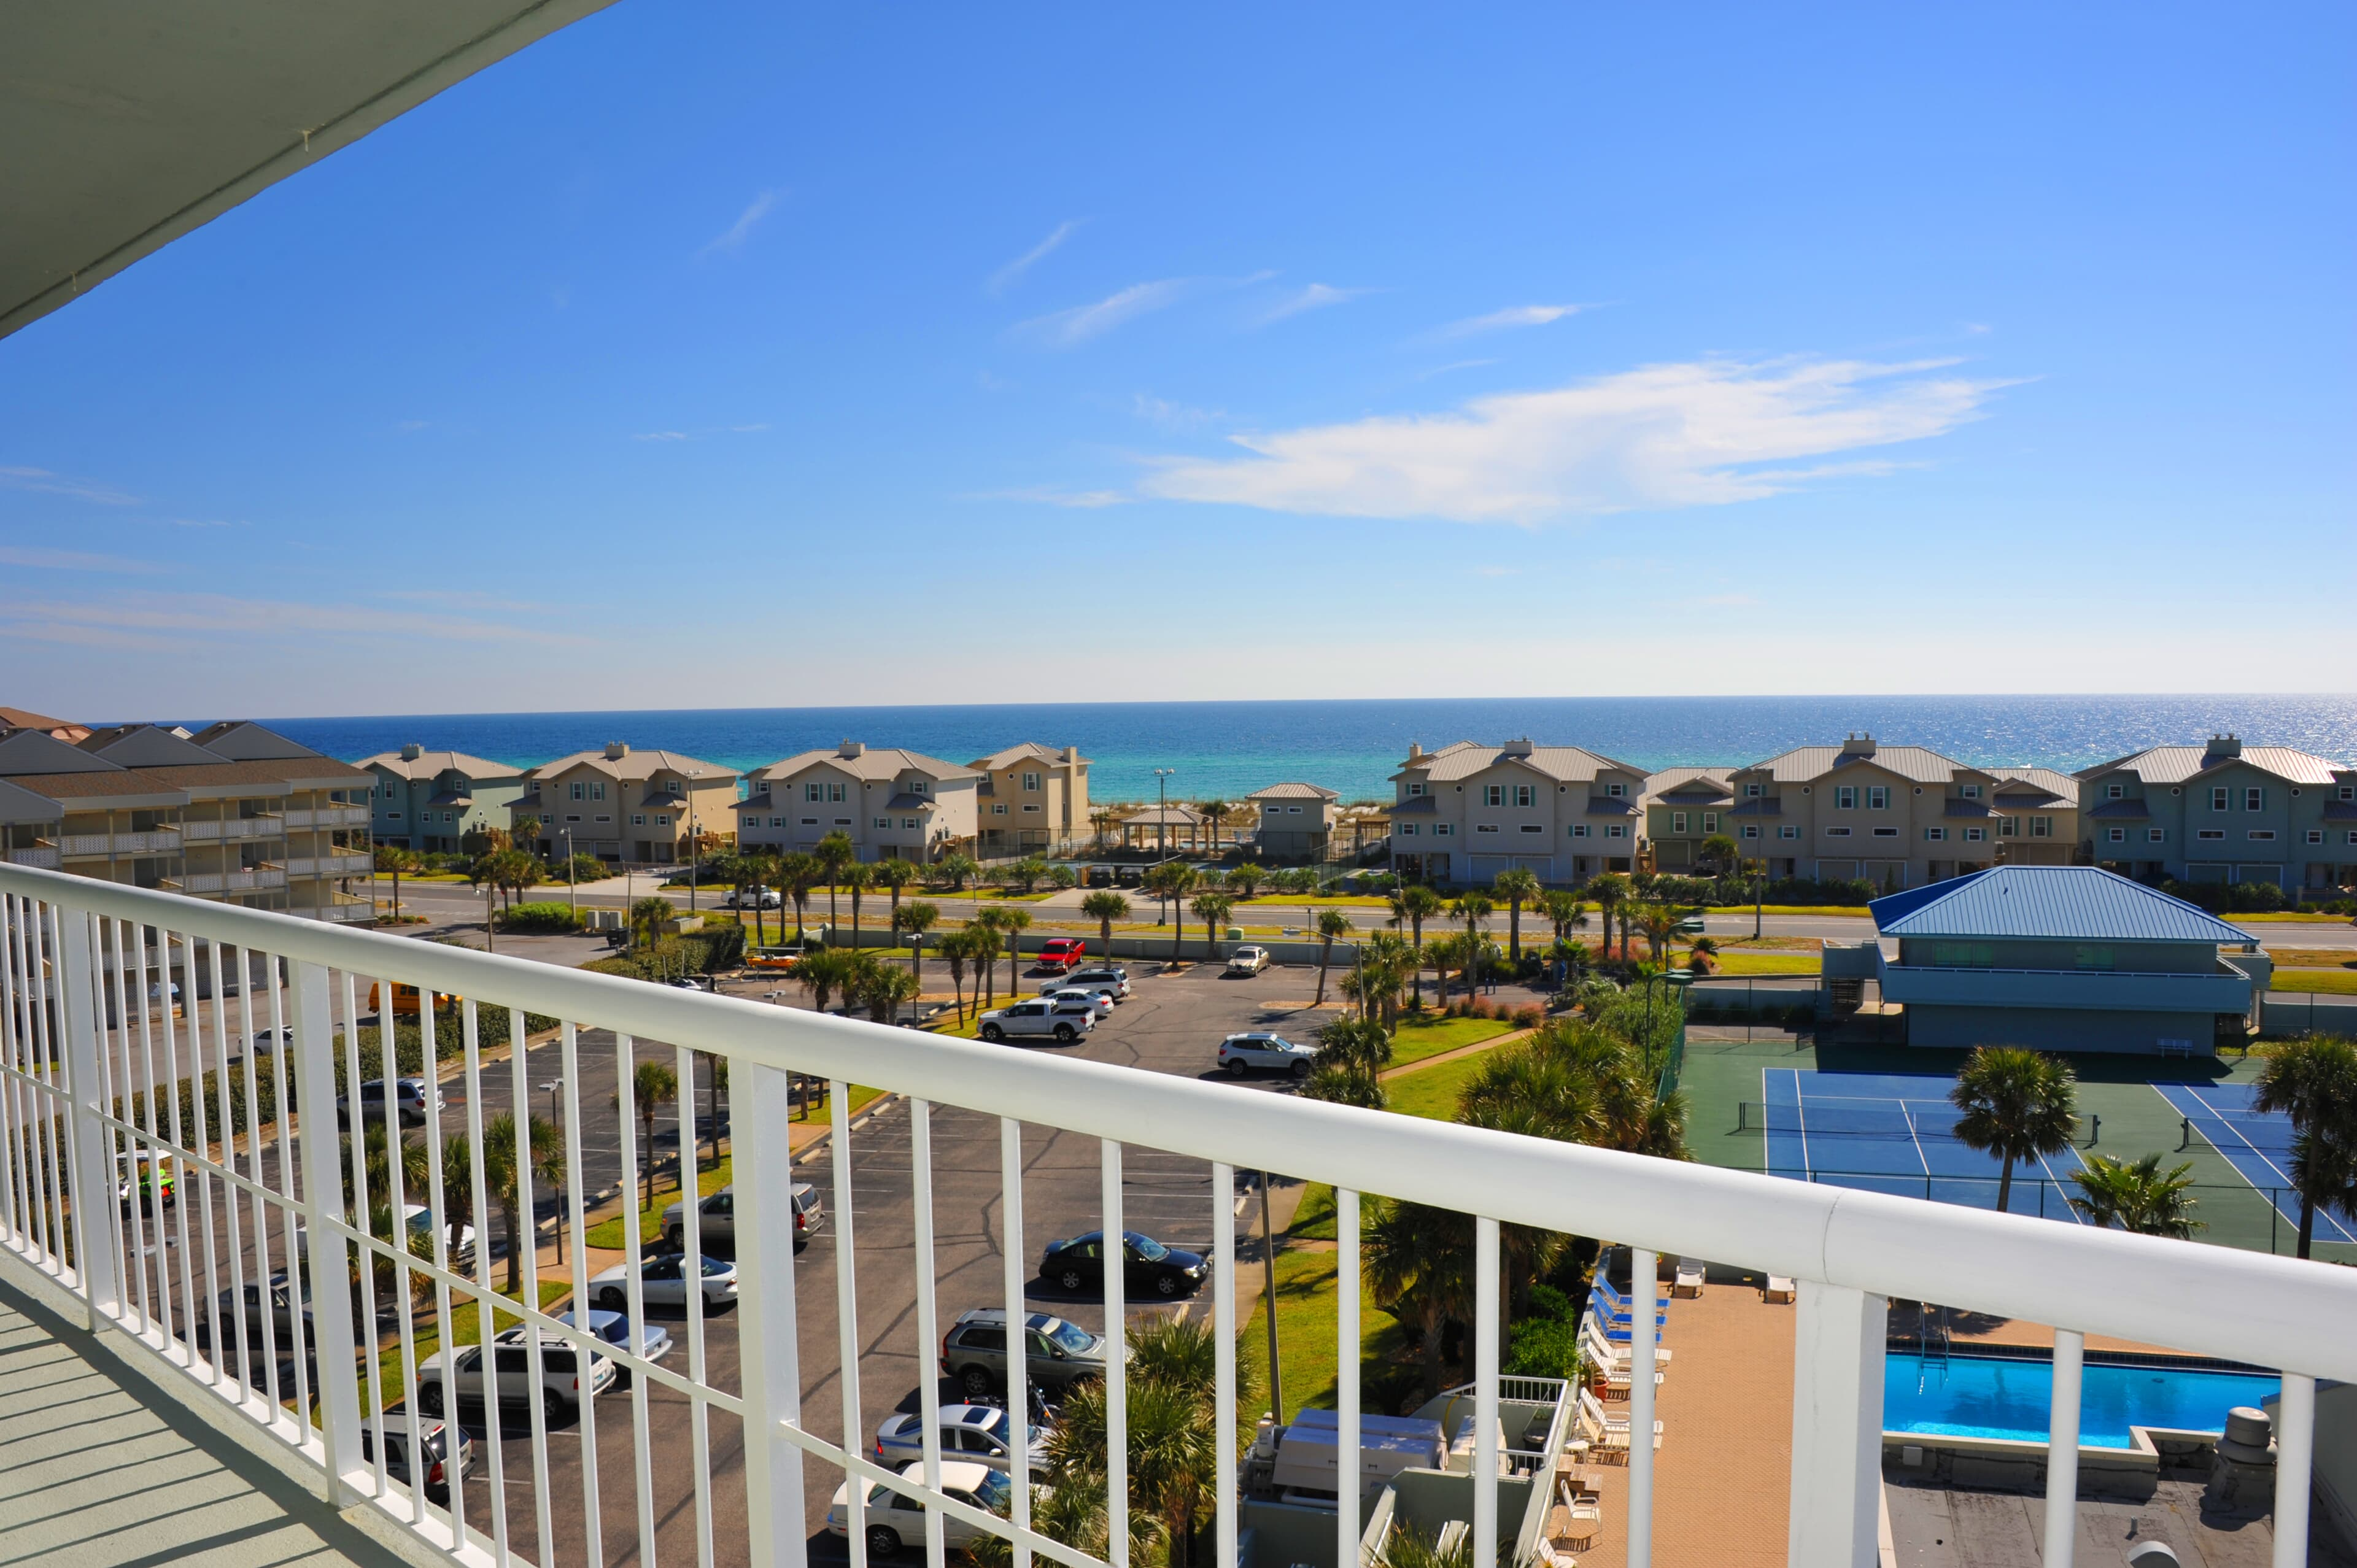 Tristan Towers #5B Condo rental in Tristan Towers ~ Pensacola Beach Condo Rentals by BeachGuide in Pensacola Beach Florida - #50